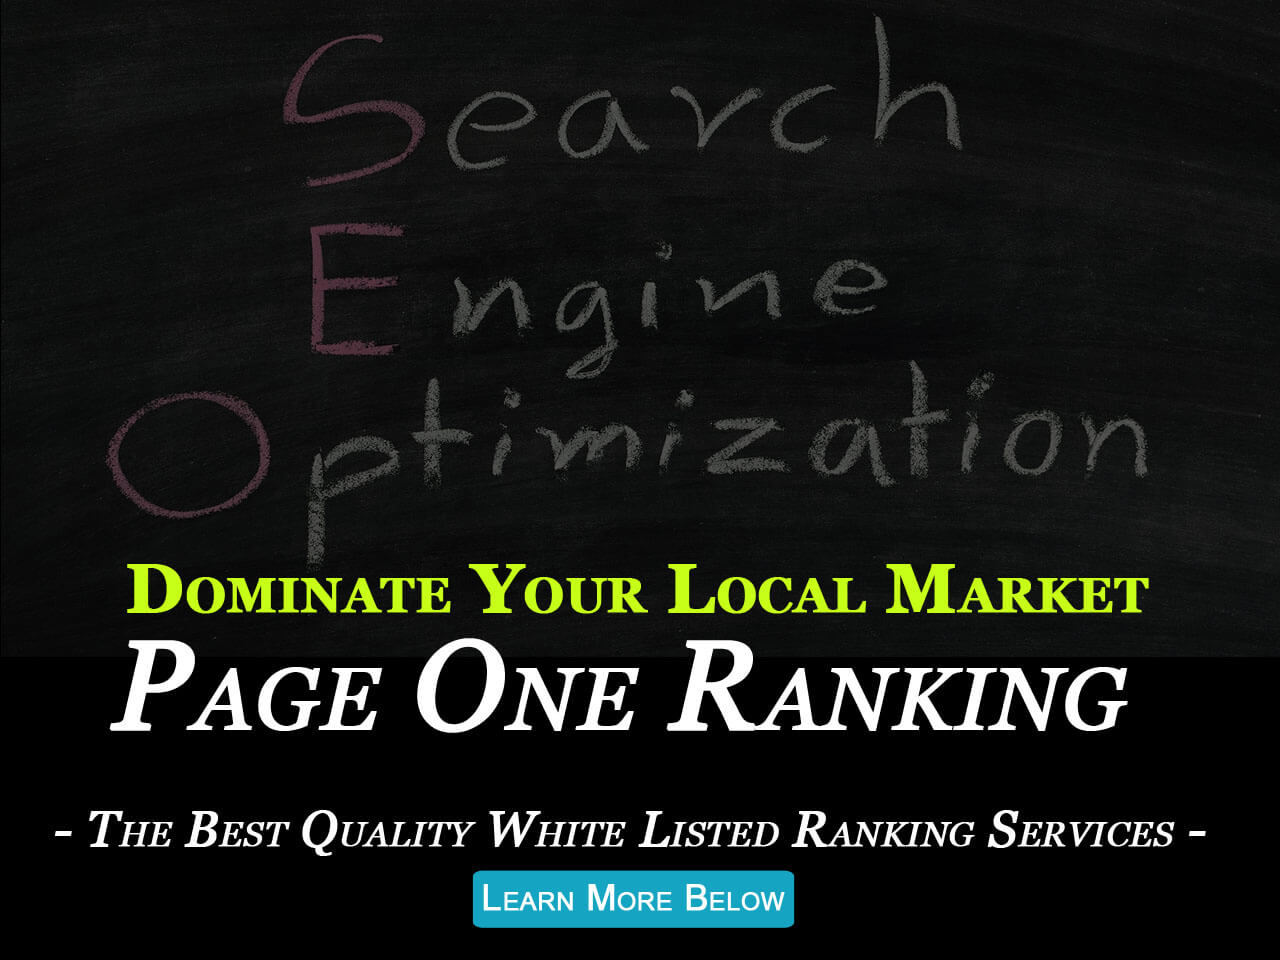 55.1 - seo company - entreprenew inc - seo and marketing agency - wellington fl - west palm beach fl - seo, mobile marketing, web design, mobile responsive, social media manangement.jpg